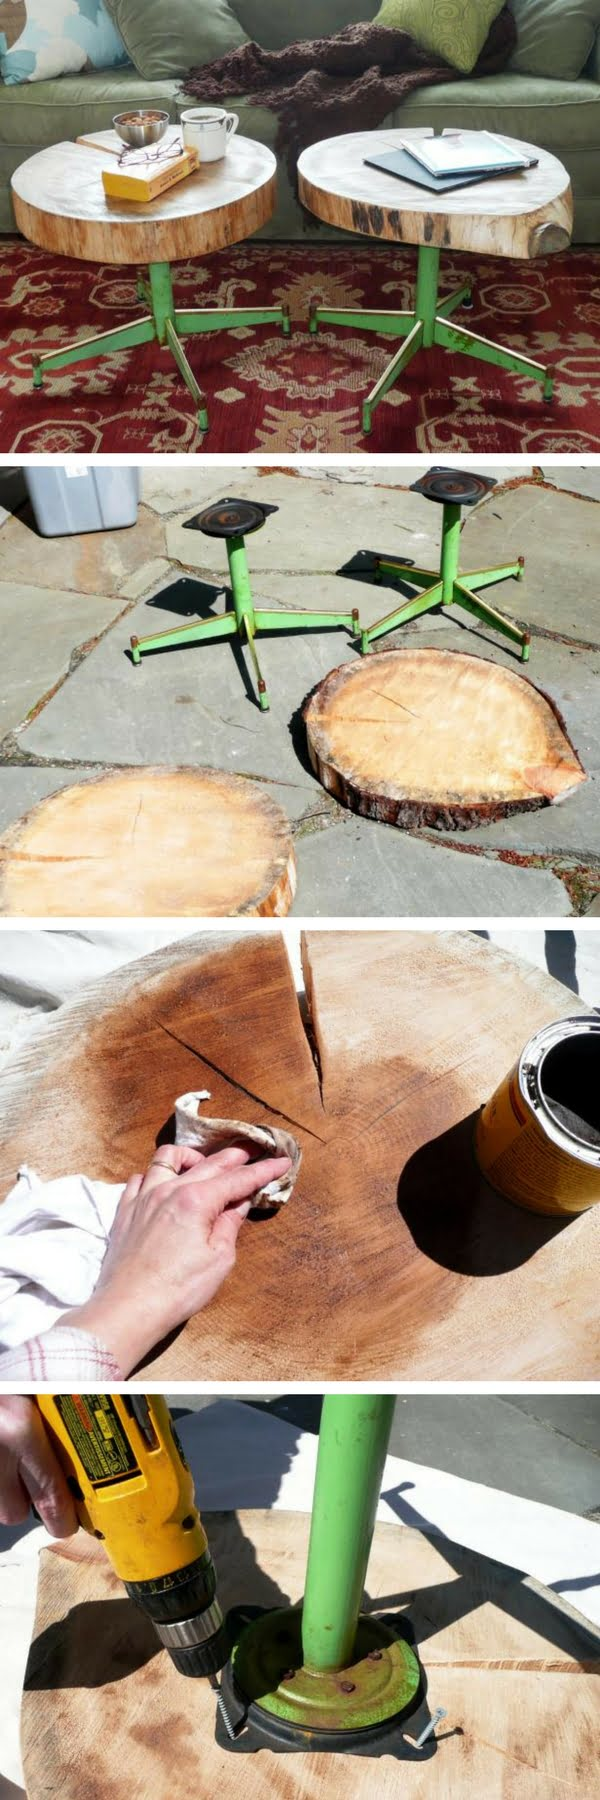 How to build DIY side tables from tree trunk and old chair legs